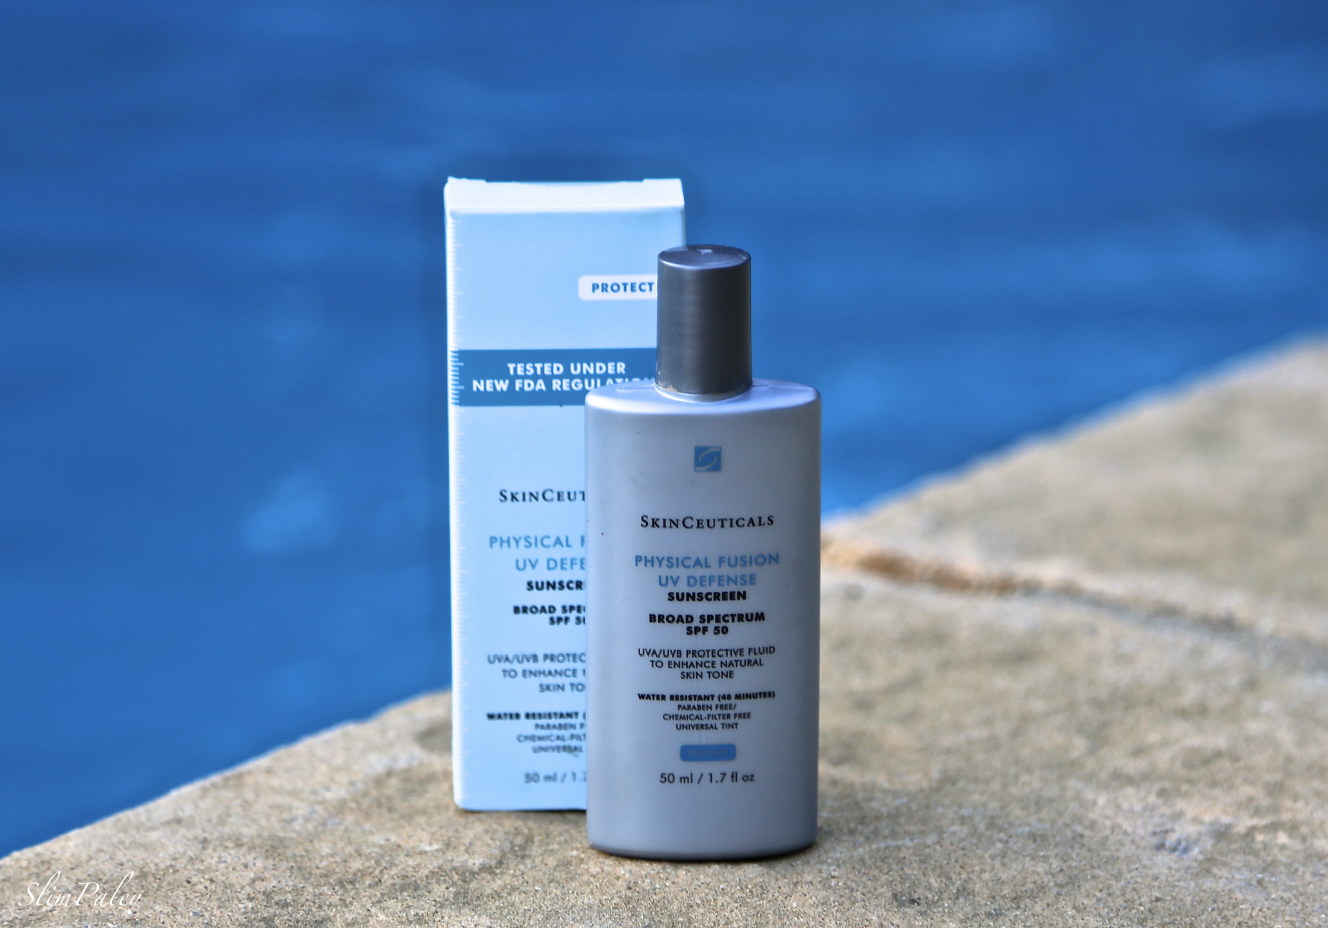 Skinceuticals Sunscreen, Slim Paley photo